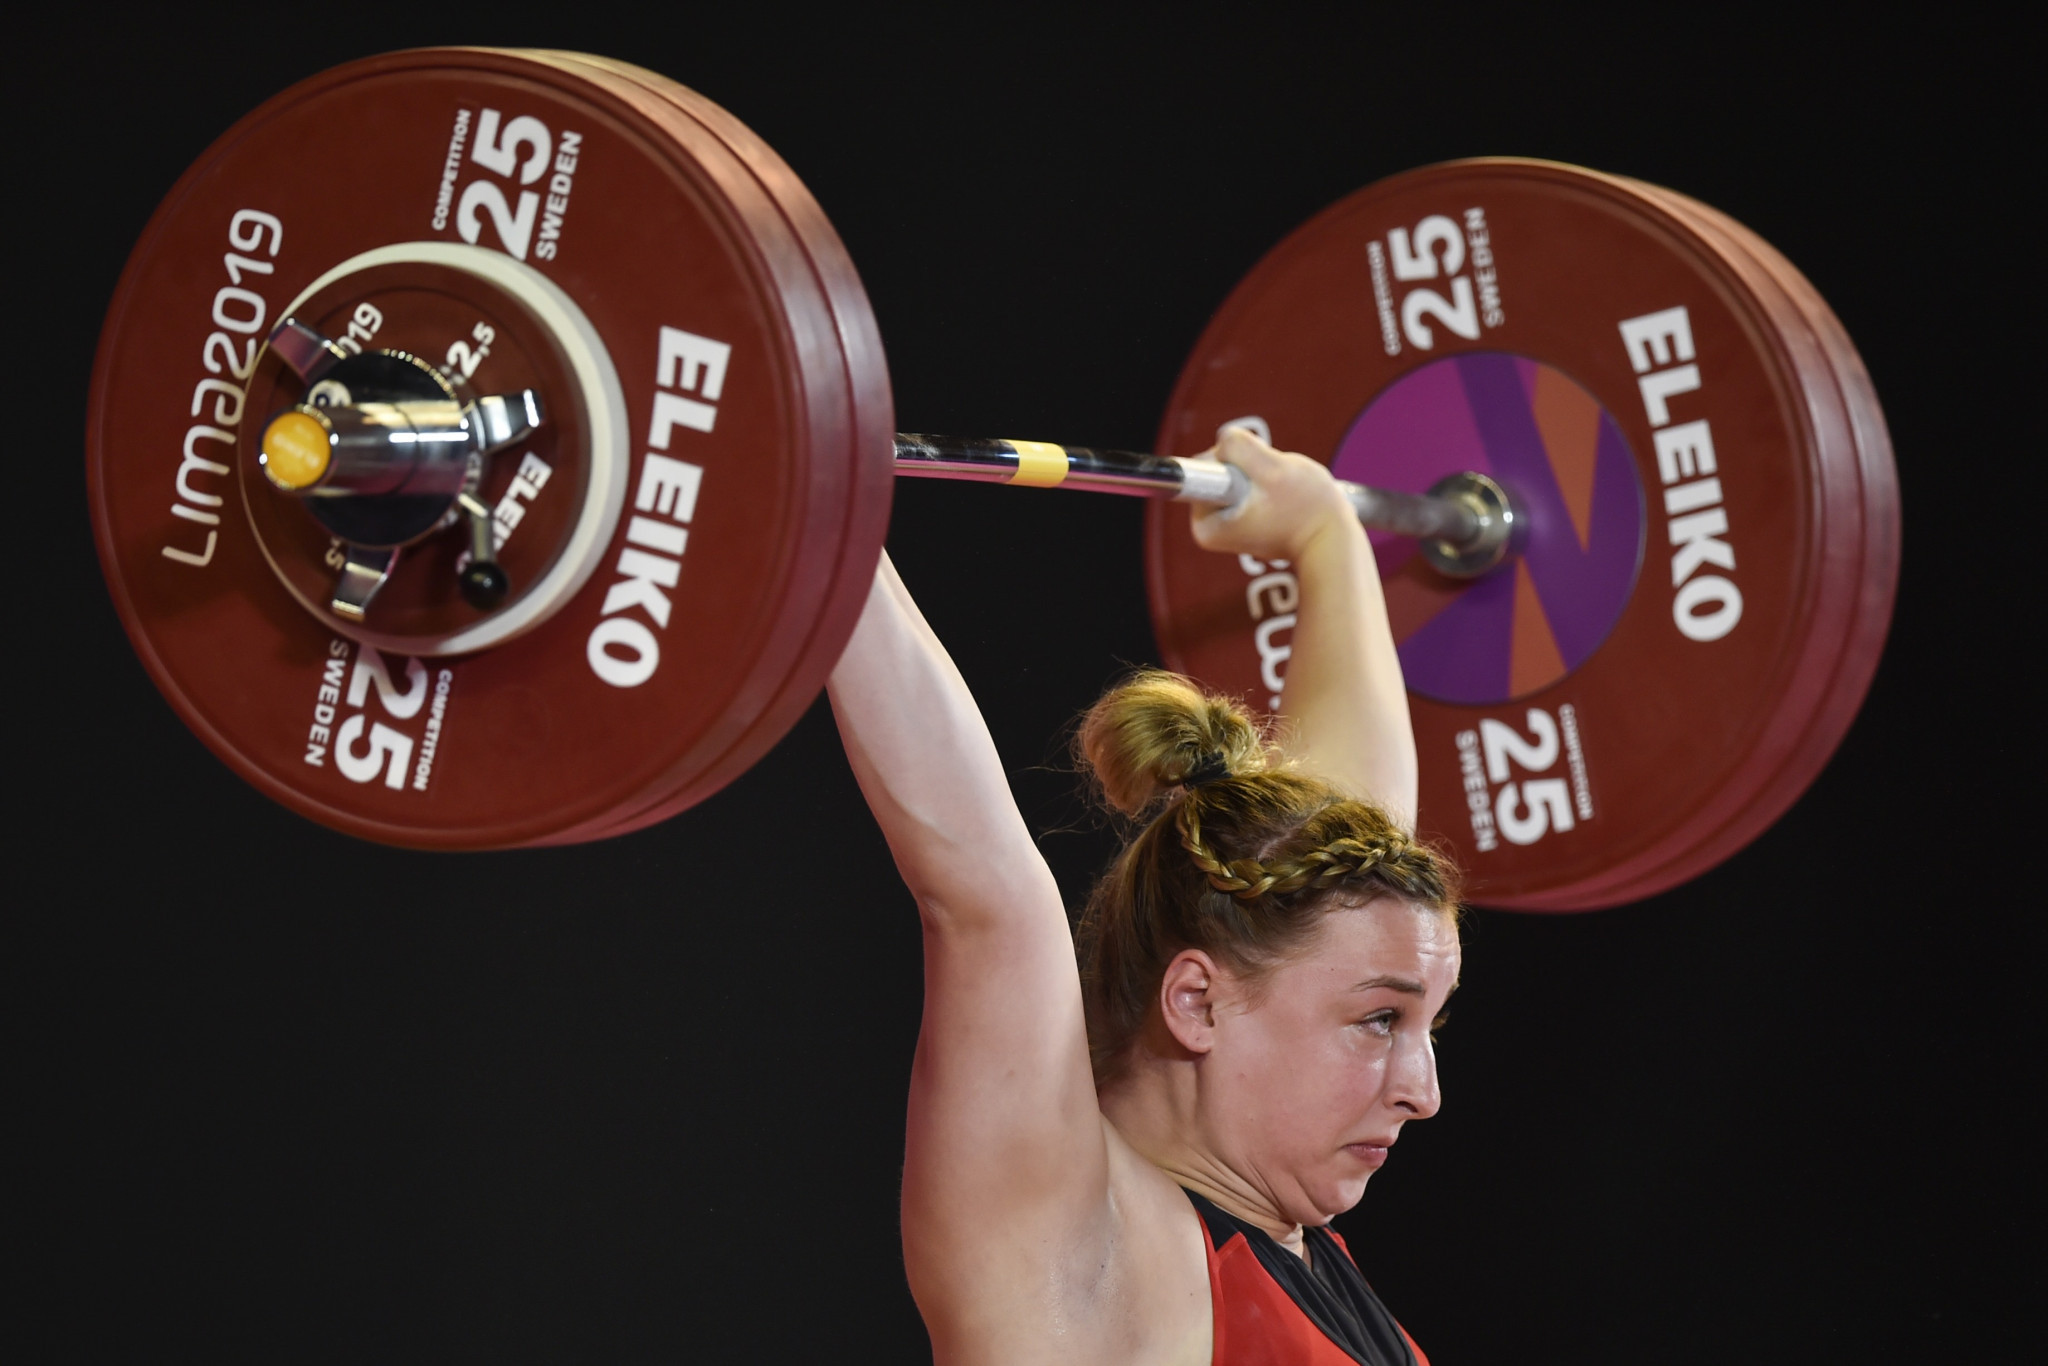 Kate Nye, the IWF's current female weightlifter of the year, was among the winners at the last edition of its Junior World Championships ©Getty Images